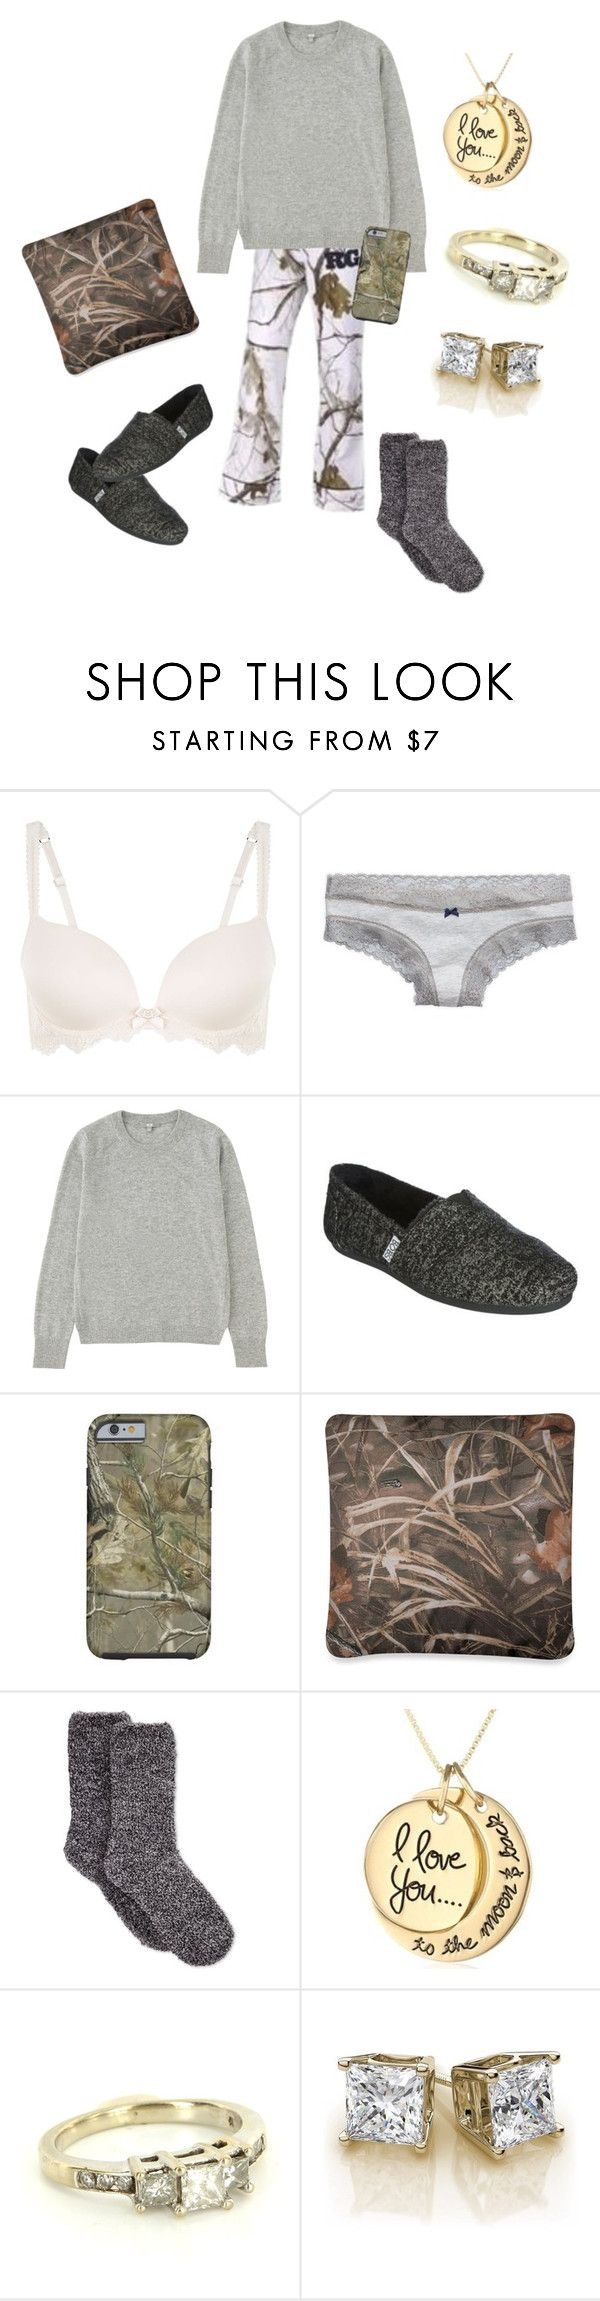 """""""lazy"""" by pistols-n-pearls ❤ liked on Polyvore featuring Aerie, Realtree, Uniqlo, Skechers and Charter Club"""